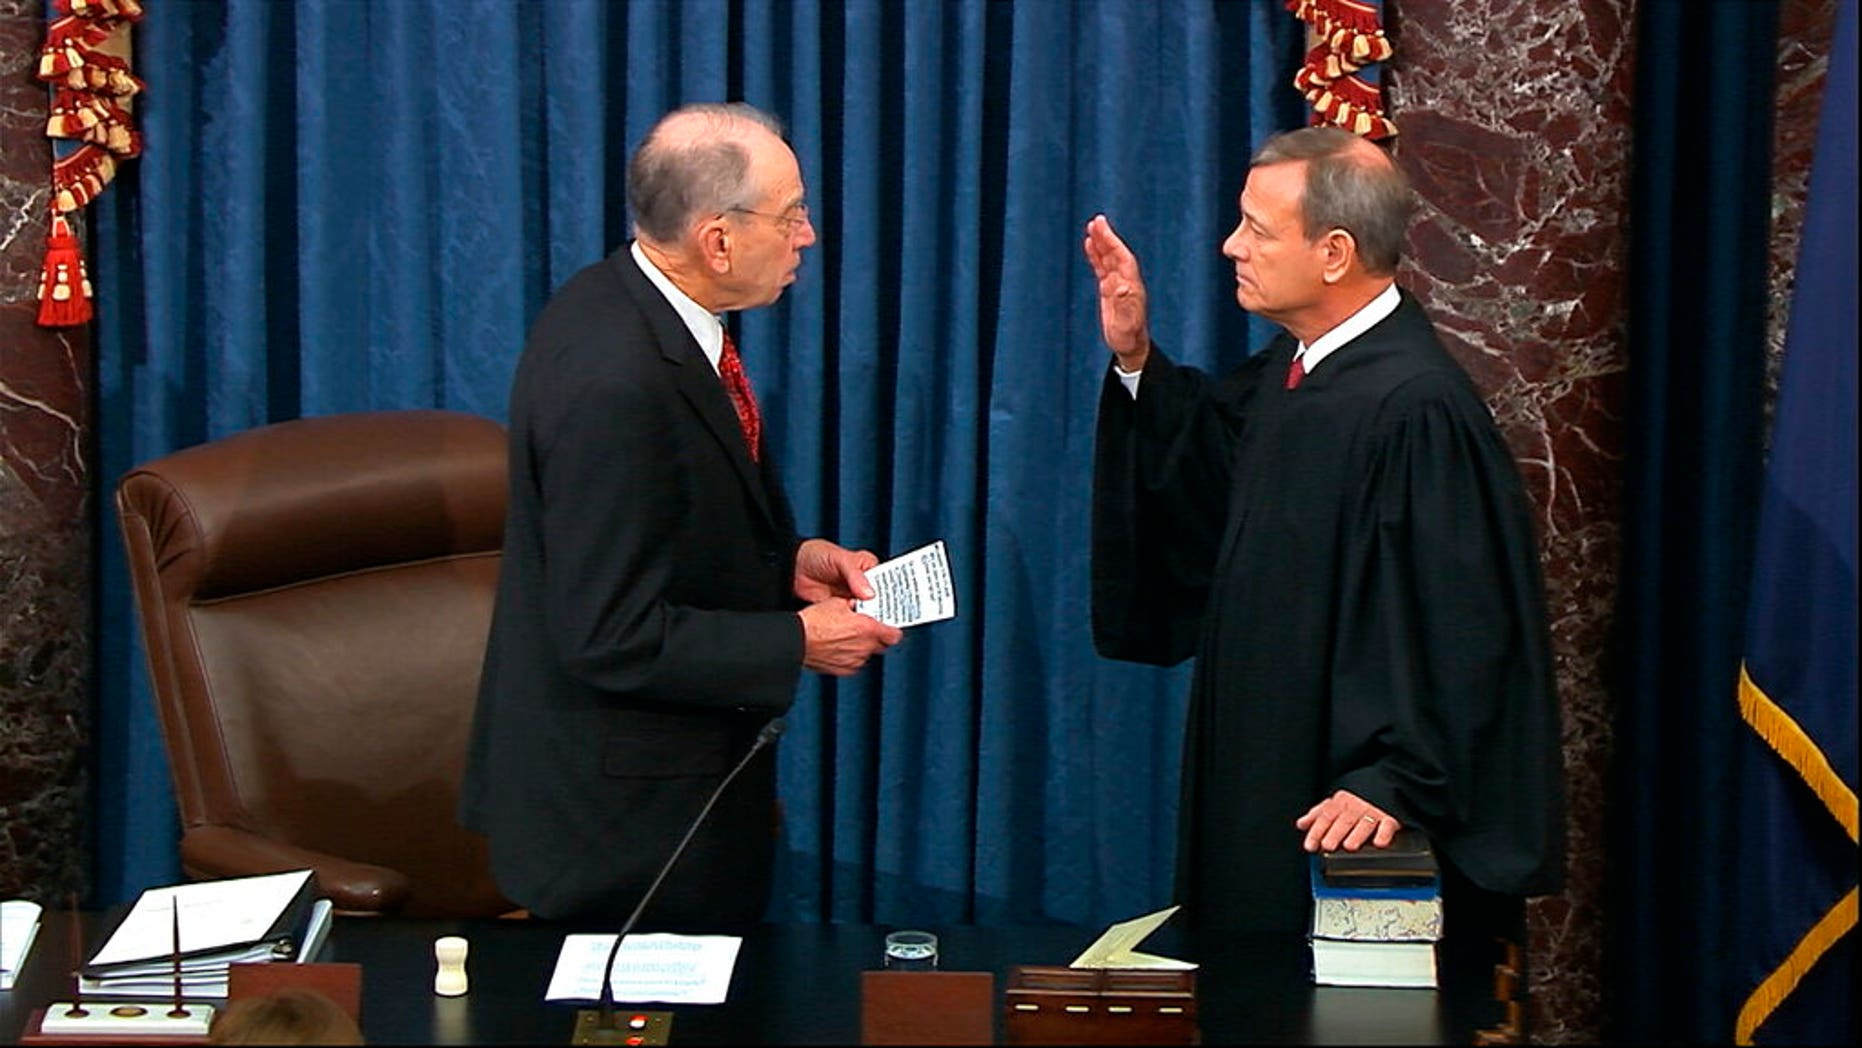 In this image from video, President Pro Tempore of the Senate Sen. Chuck Grassley, R-Iowa., swears in Supreme Court Chief Justice John Roberts as the presiding officer for the impeachment trial of President Trump in the Senate at the U.S. Capitol in Washington, Thursday, Jan. 16, 2020. (Senate Television via AP)